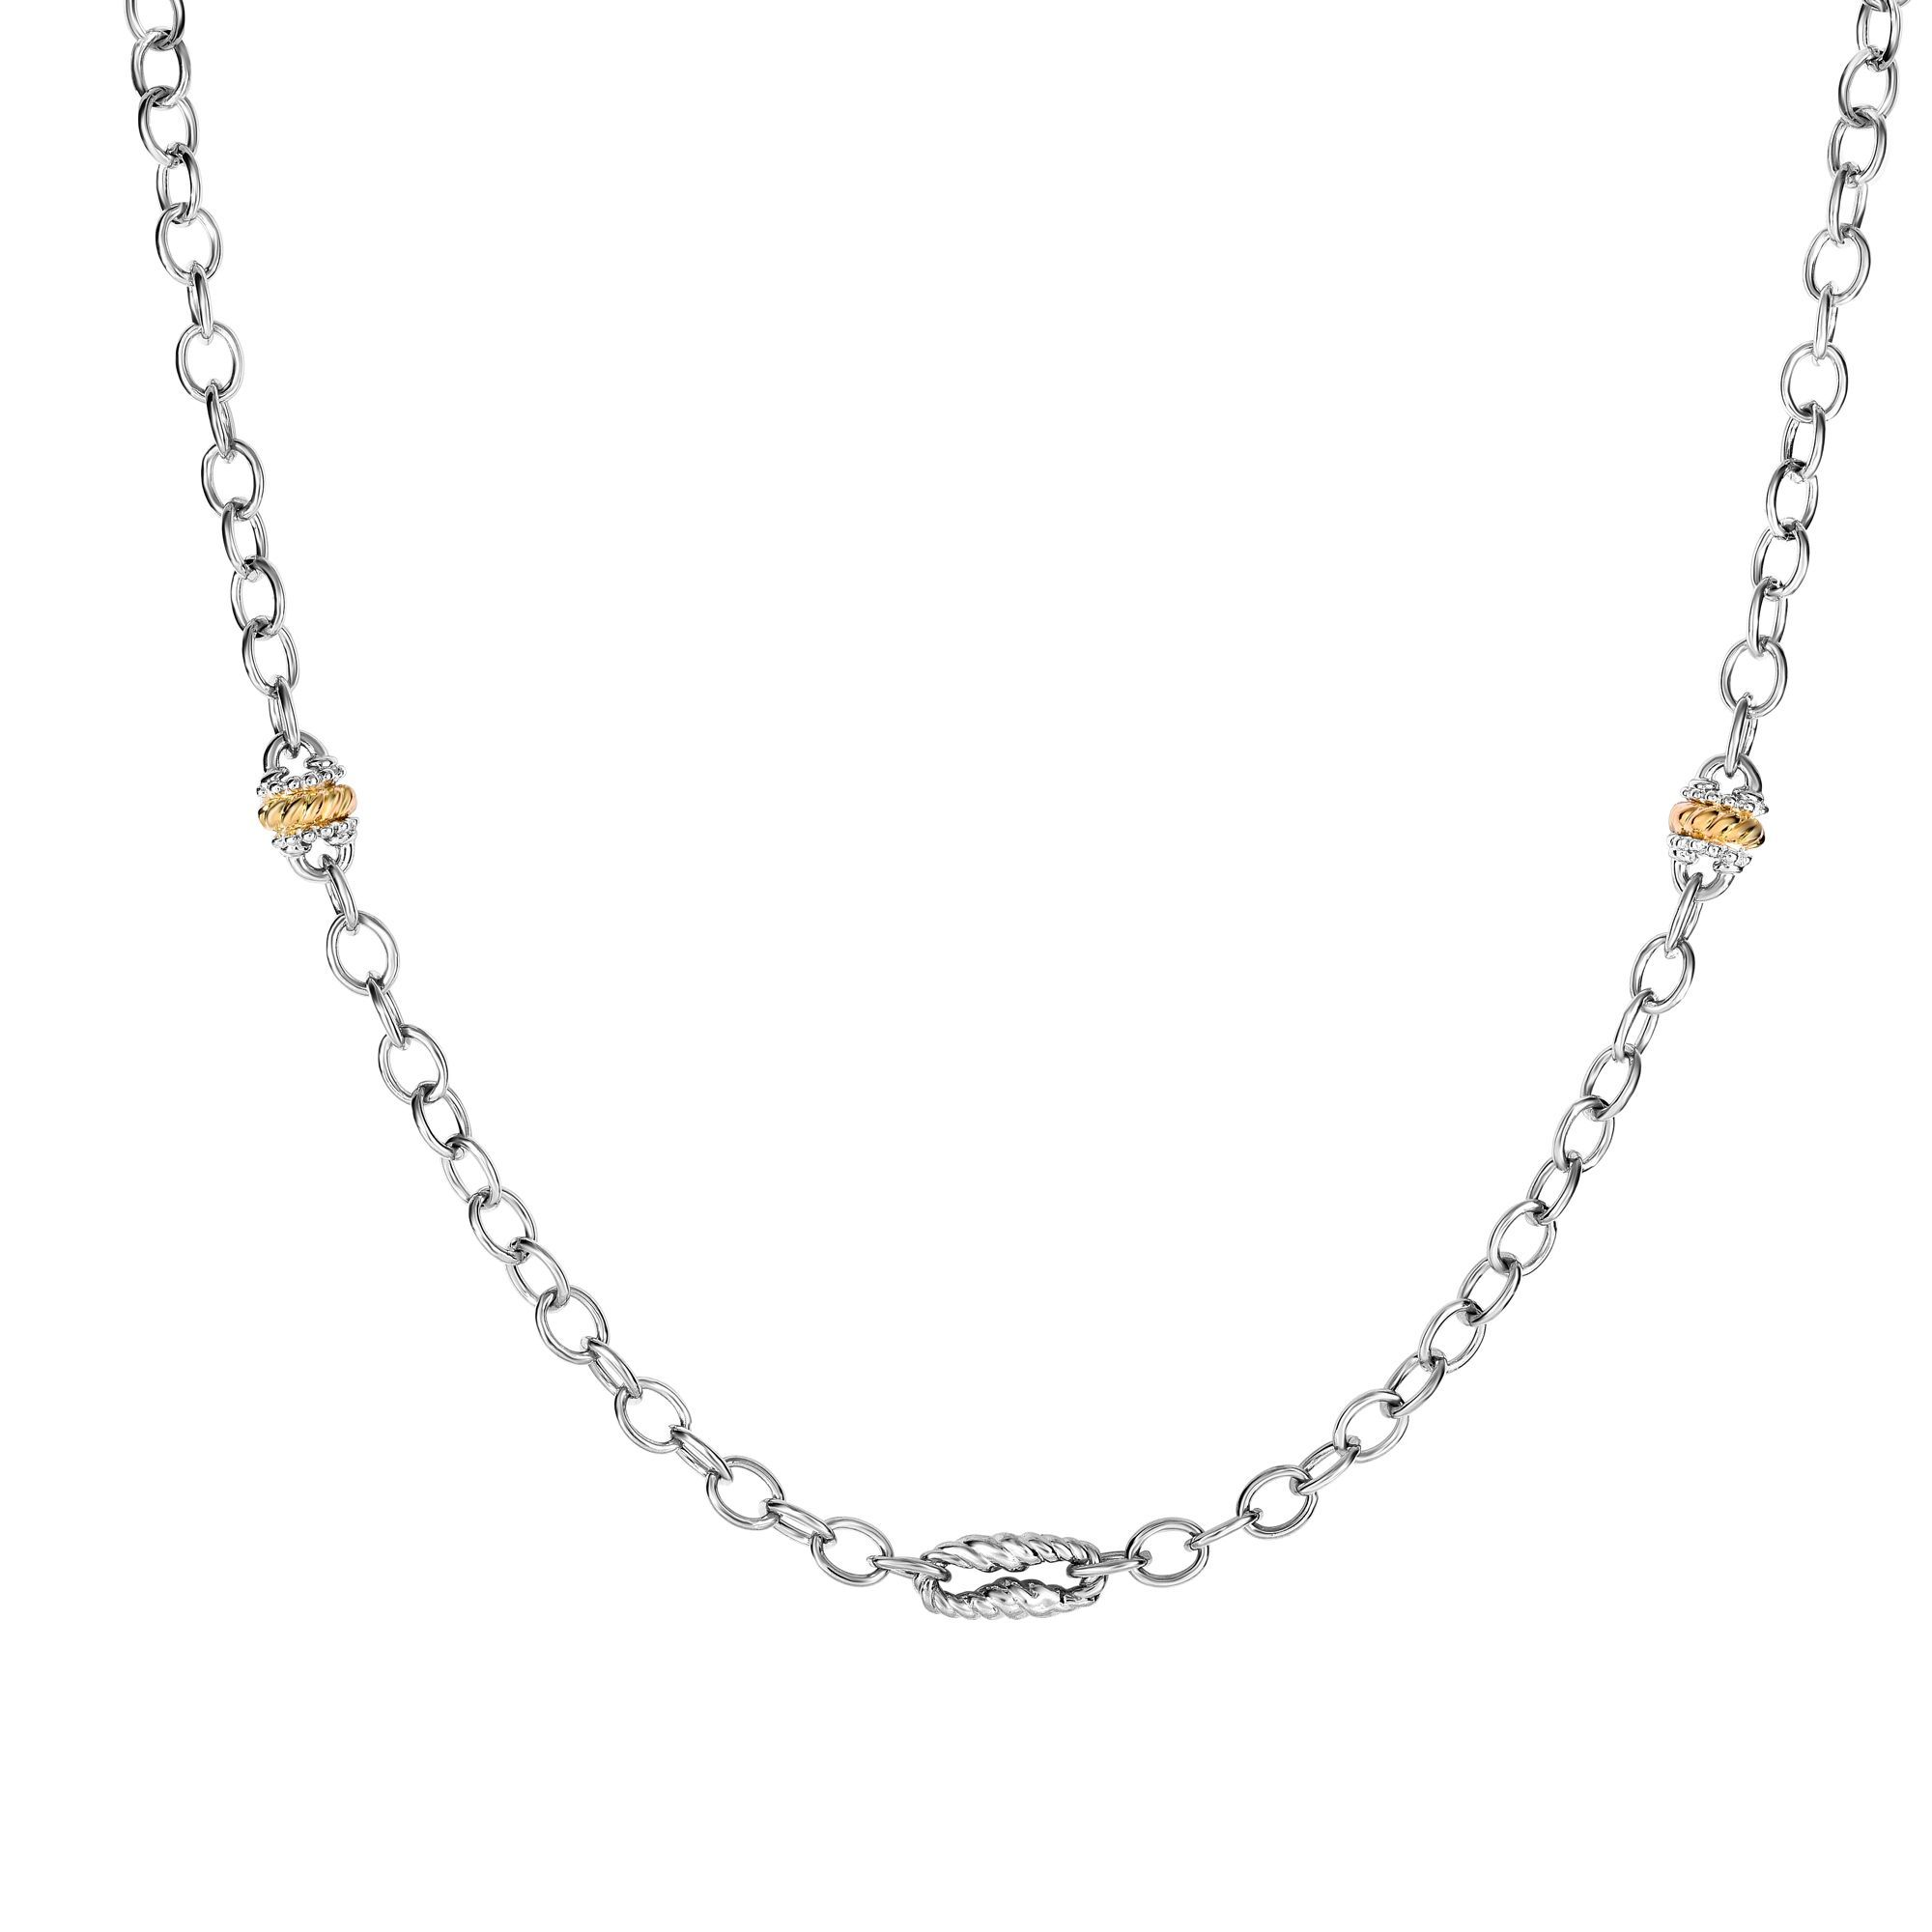 18K Yellow & White Gold Necklace James Wolf Jewelers Mason, OH